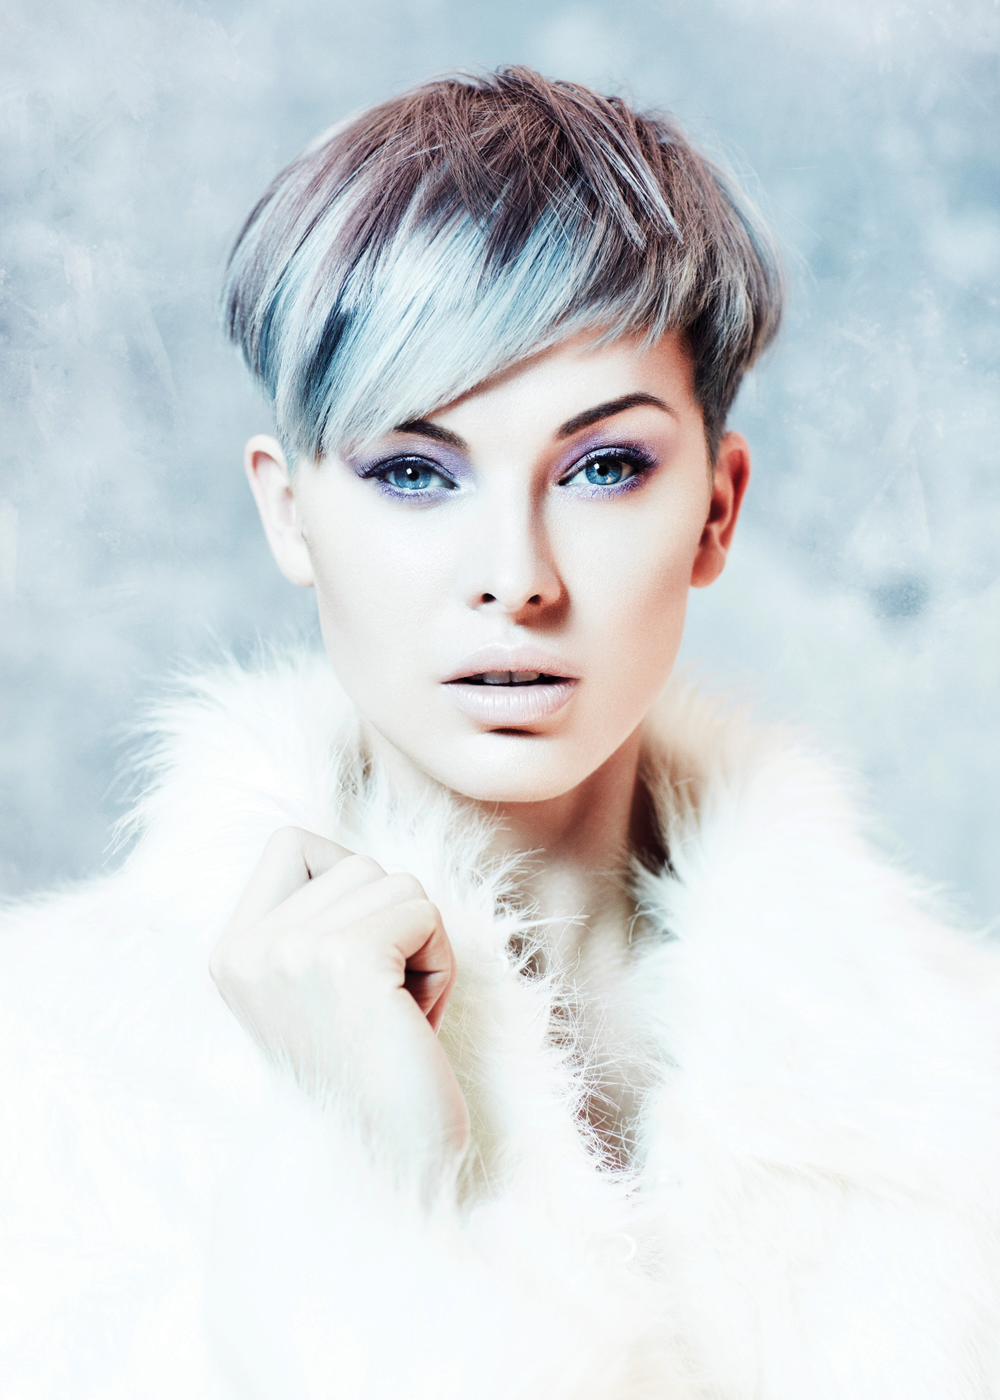 Blue Dream Baby: The icy blue of the model's hair and eyes contrast with the warmth of her fluffy coat to create an inviting look.